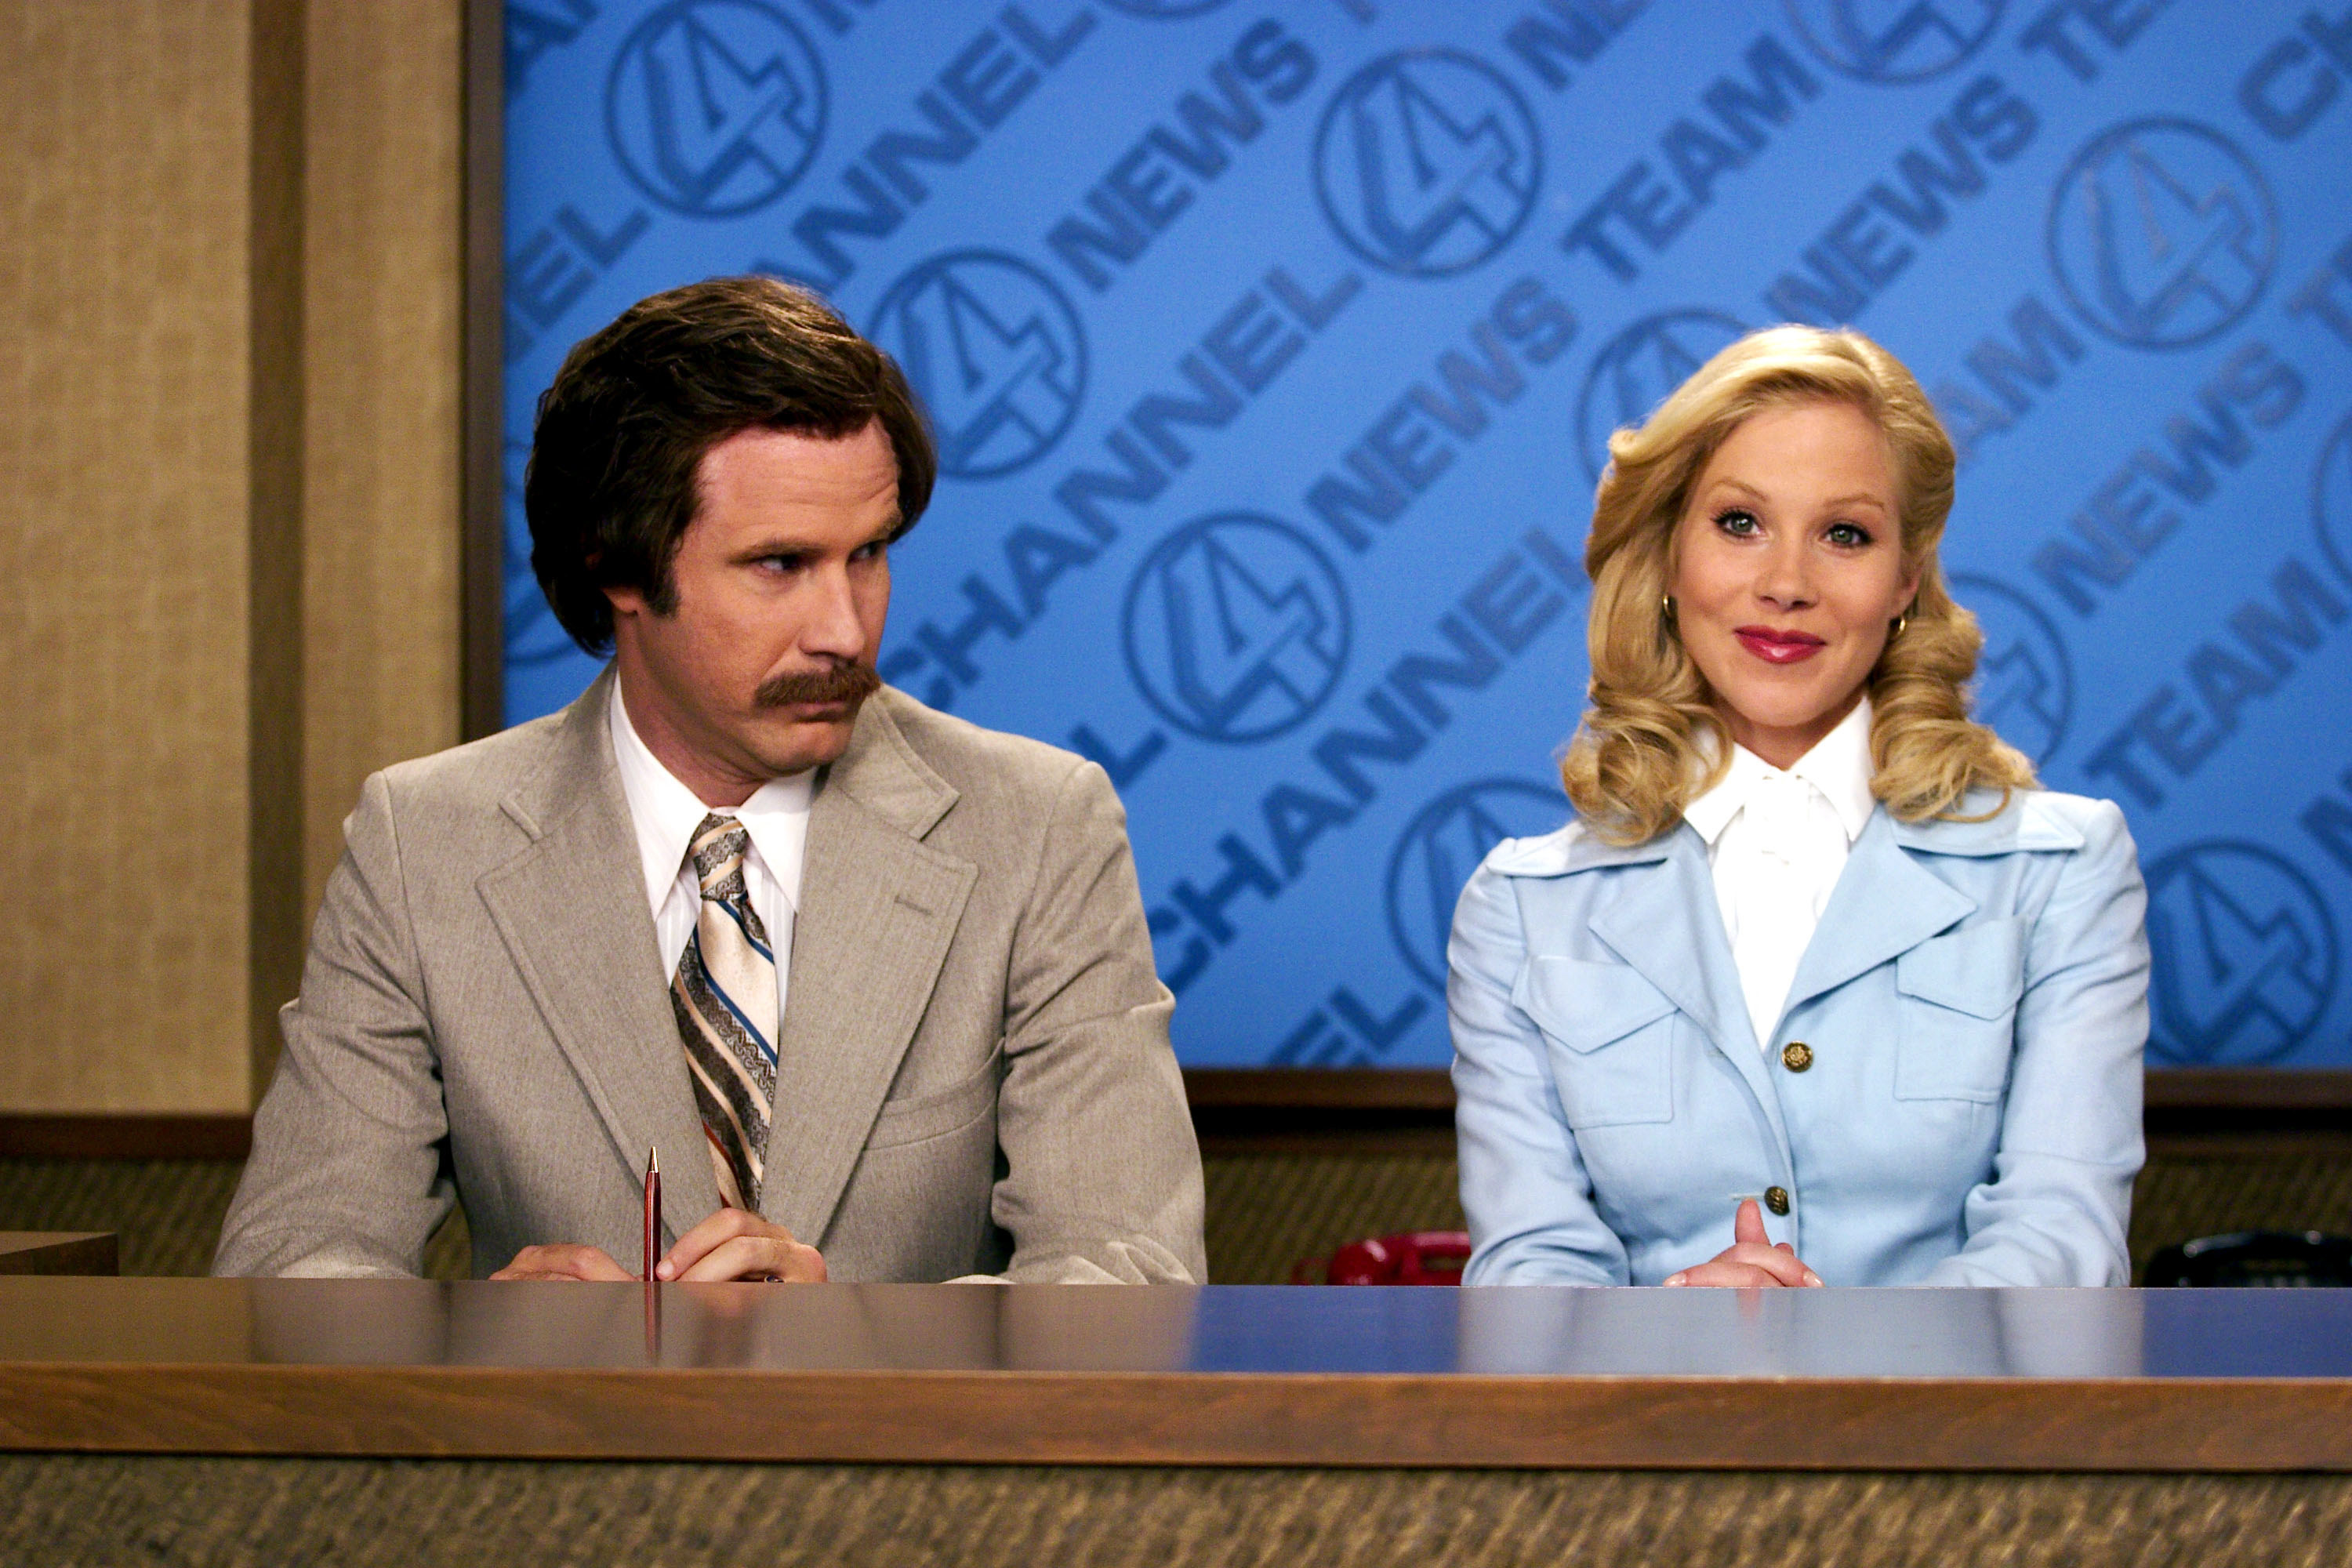 Will Ferrell and Christina Applegate sit behind a news desk